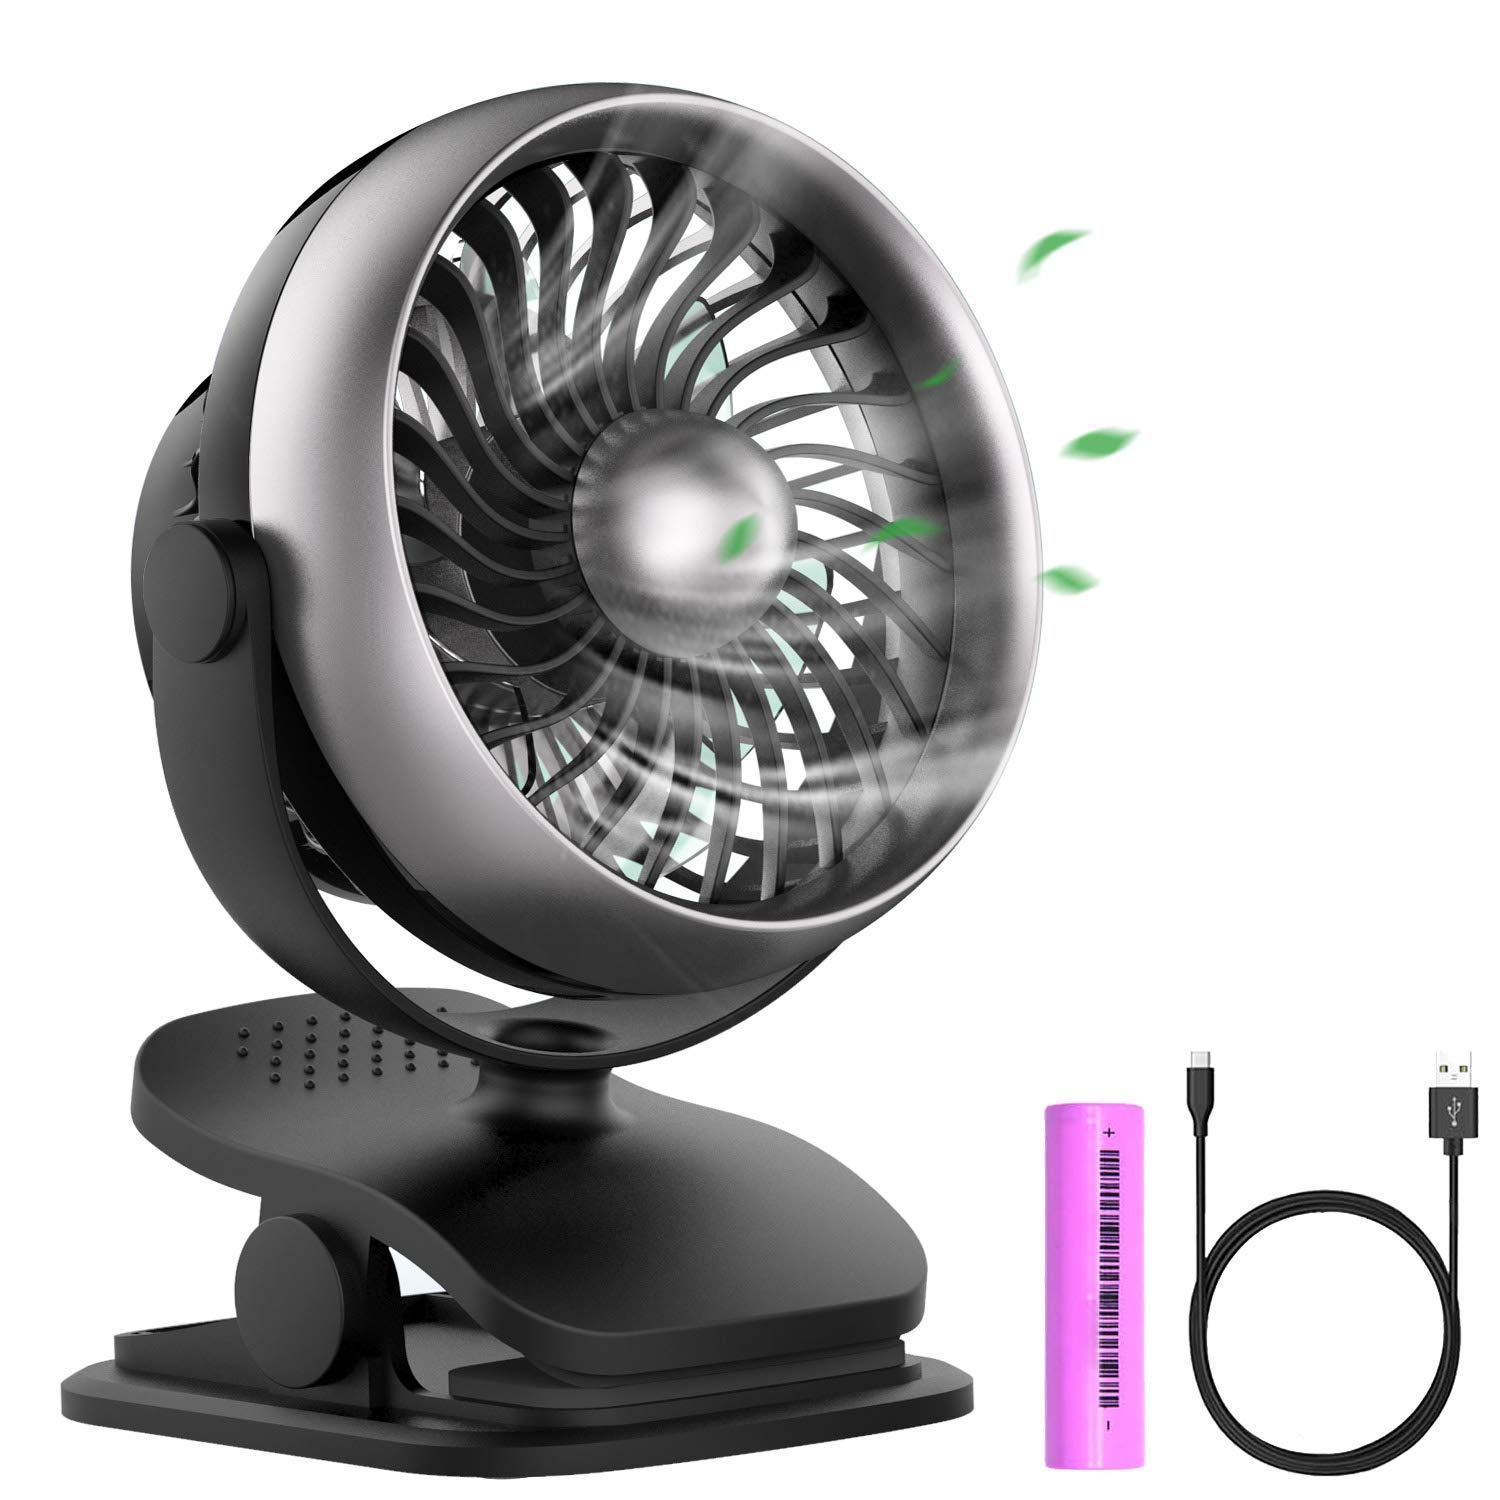 Anglink Stroller Fan, Cool Breeze Designing, Clip on Fan for Table, Office, Camping, Dorm, Baby Stroller